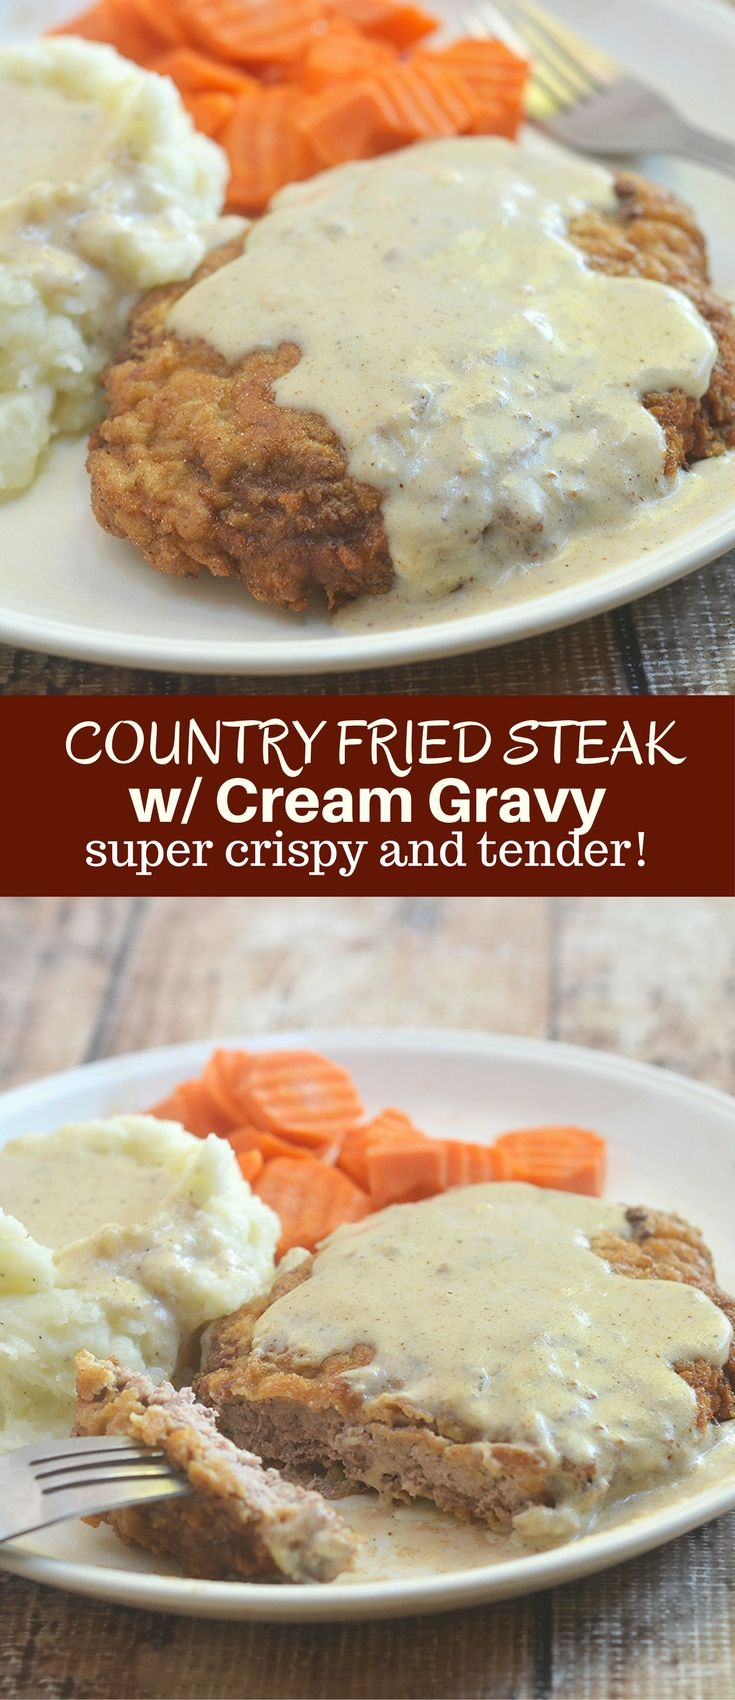 Country Fried Steak with Creamy Gravy made crispy, super tender and tasty using a buttermilk marinade. Hearty and delicious with a flavorful milk gravy, it is the ultimate comfort food.  via @lalainespins